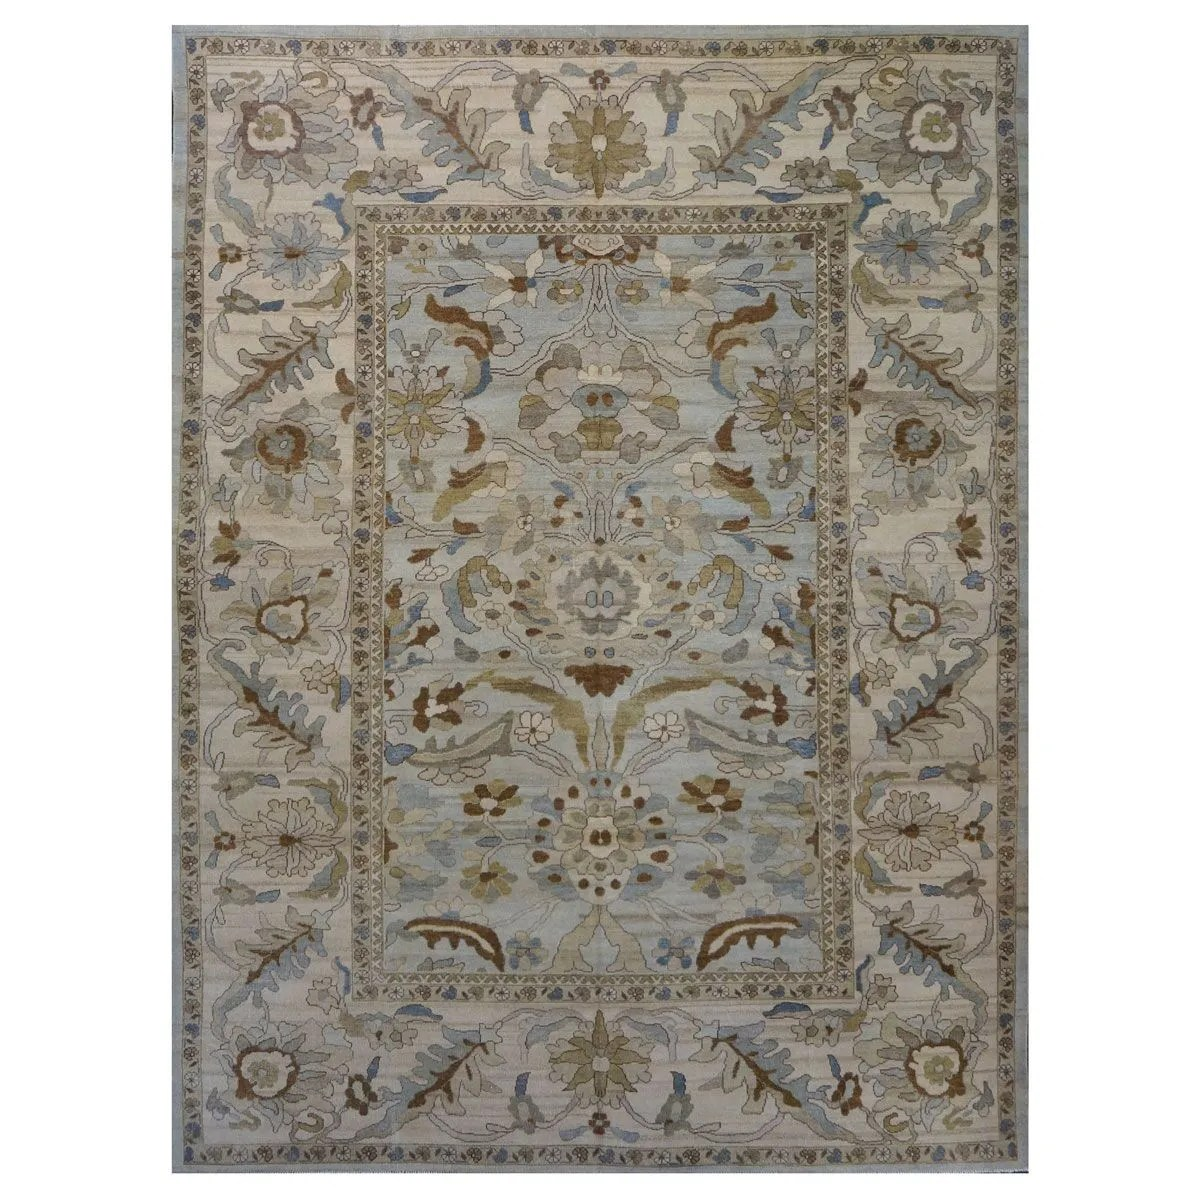 Area Rugs Traditional Sultanabad Wool 9902773 9 X 12 Beige